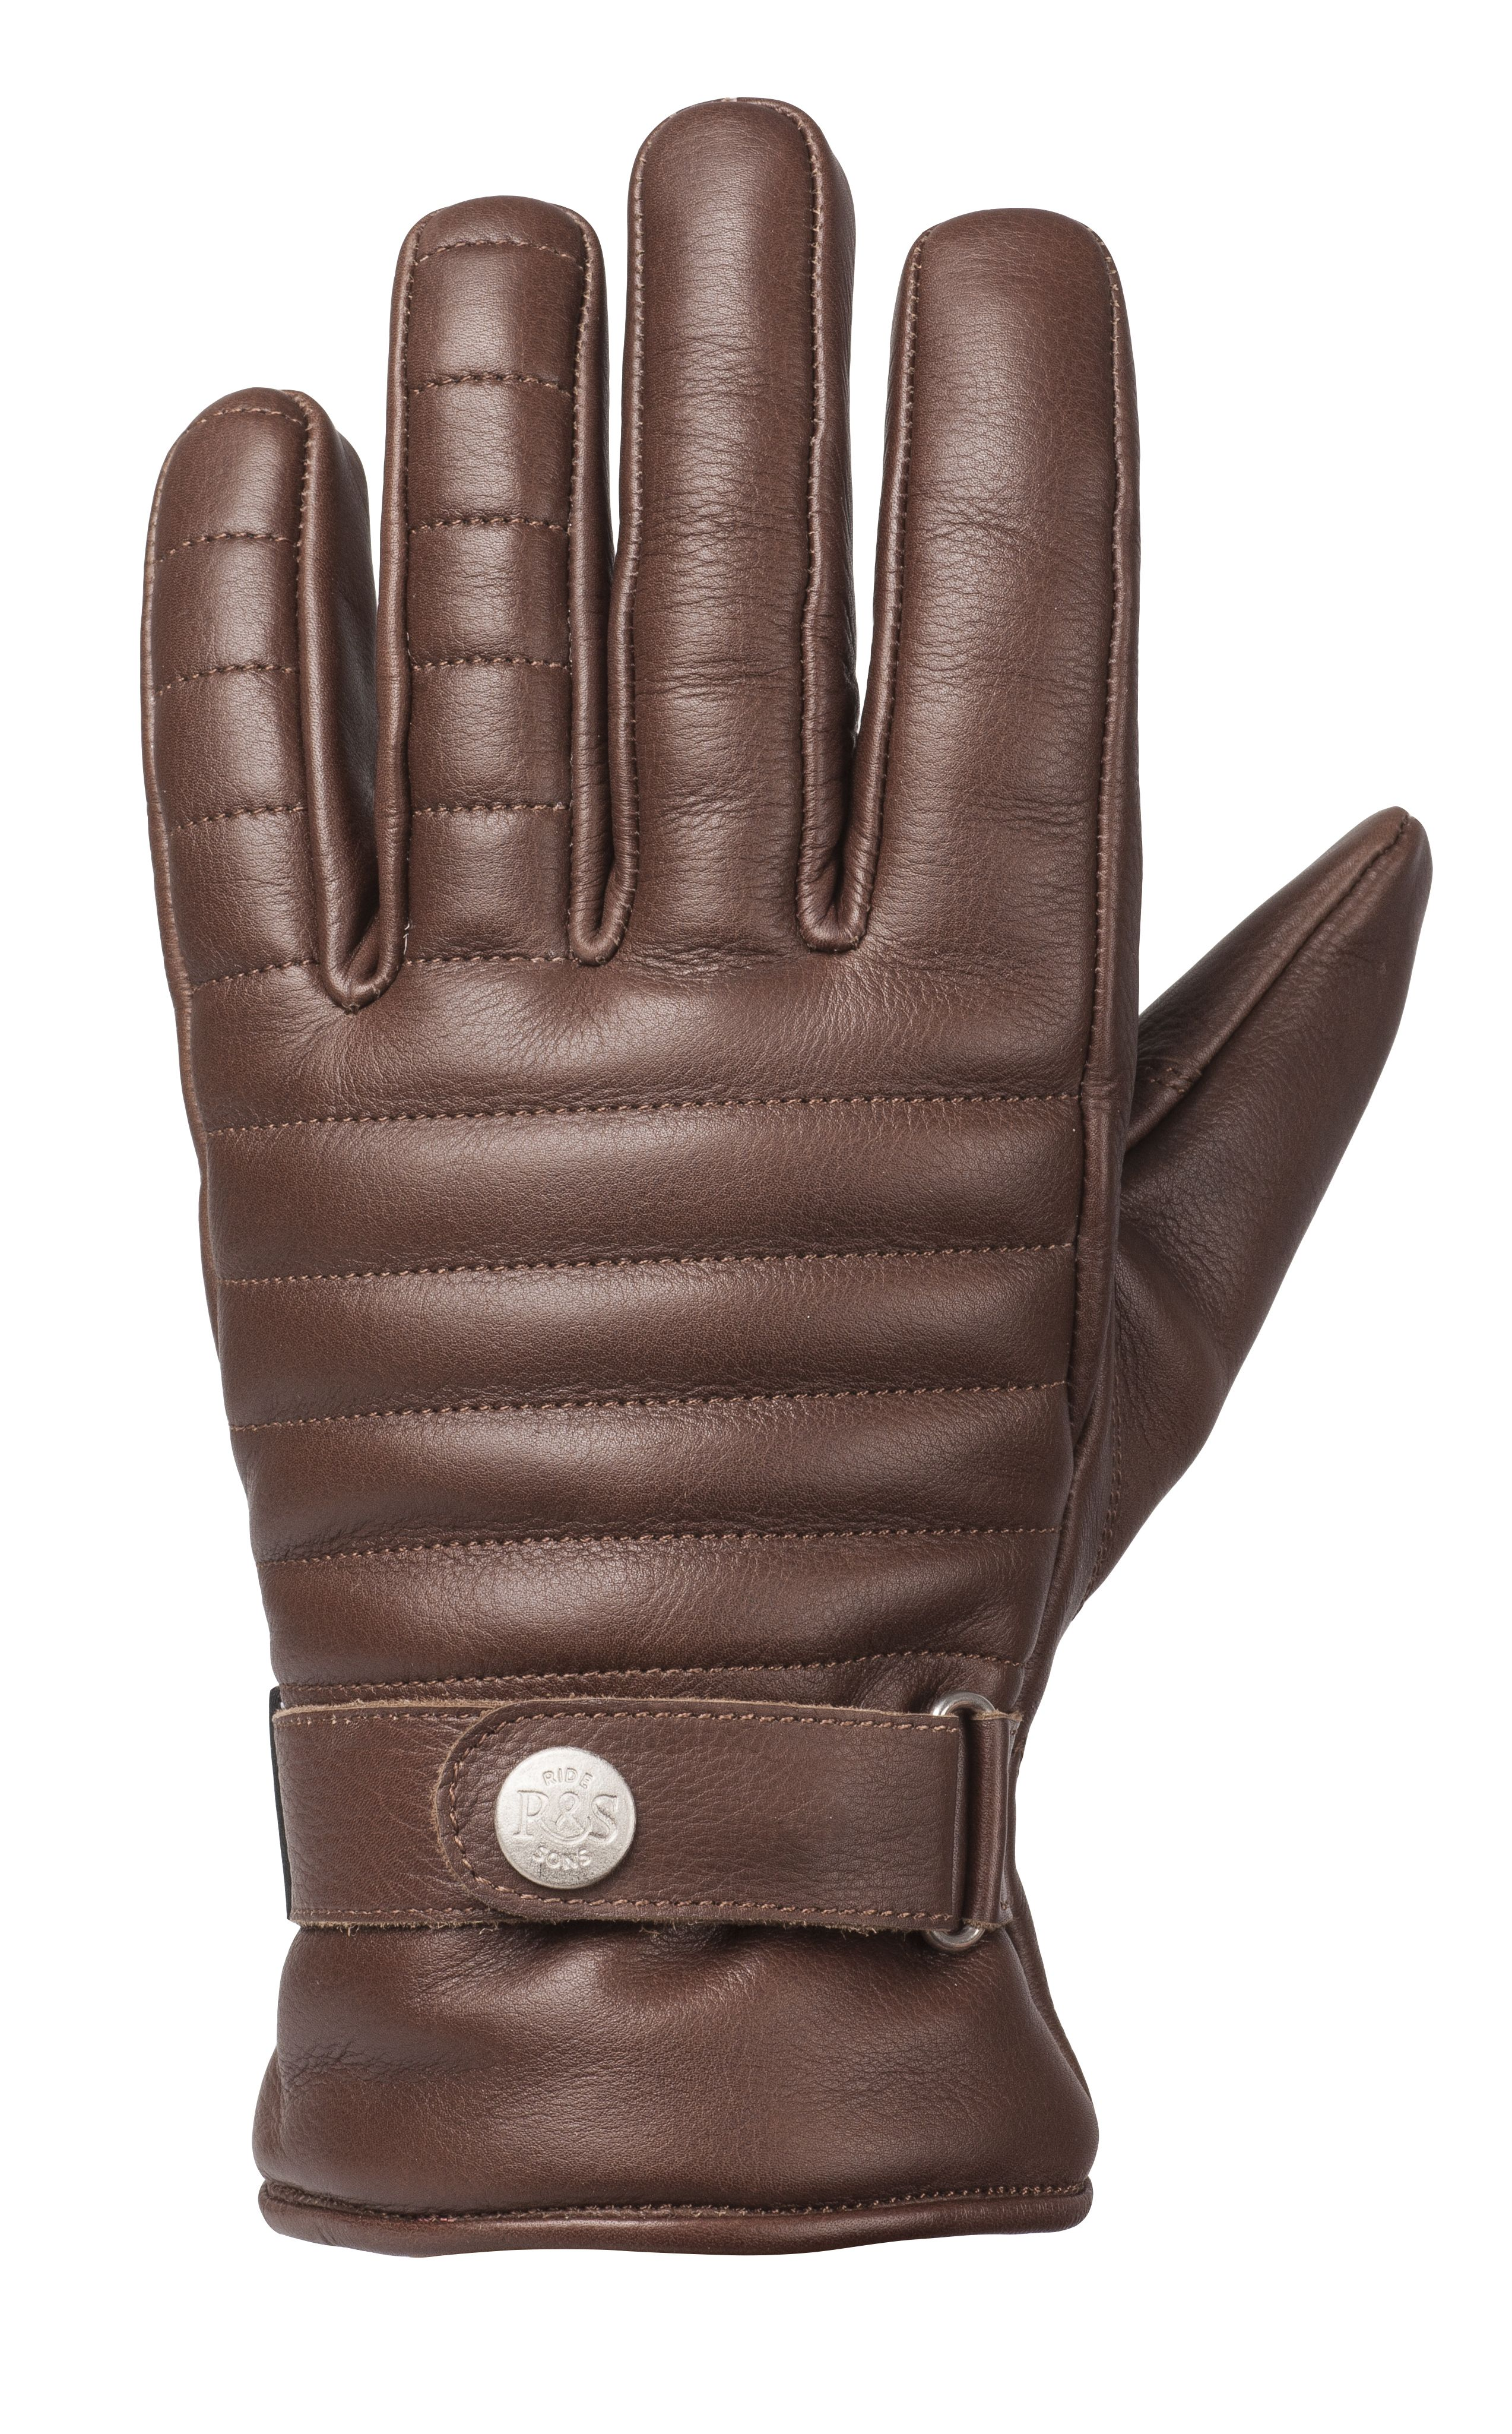 7a4e12dbac191 RIDE&SONS Empire Insulated Leather Glove Brown | gloves | Insulated ...